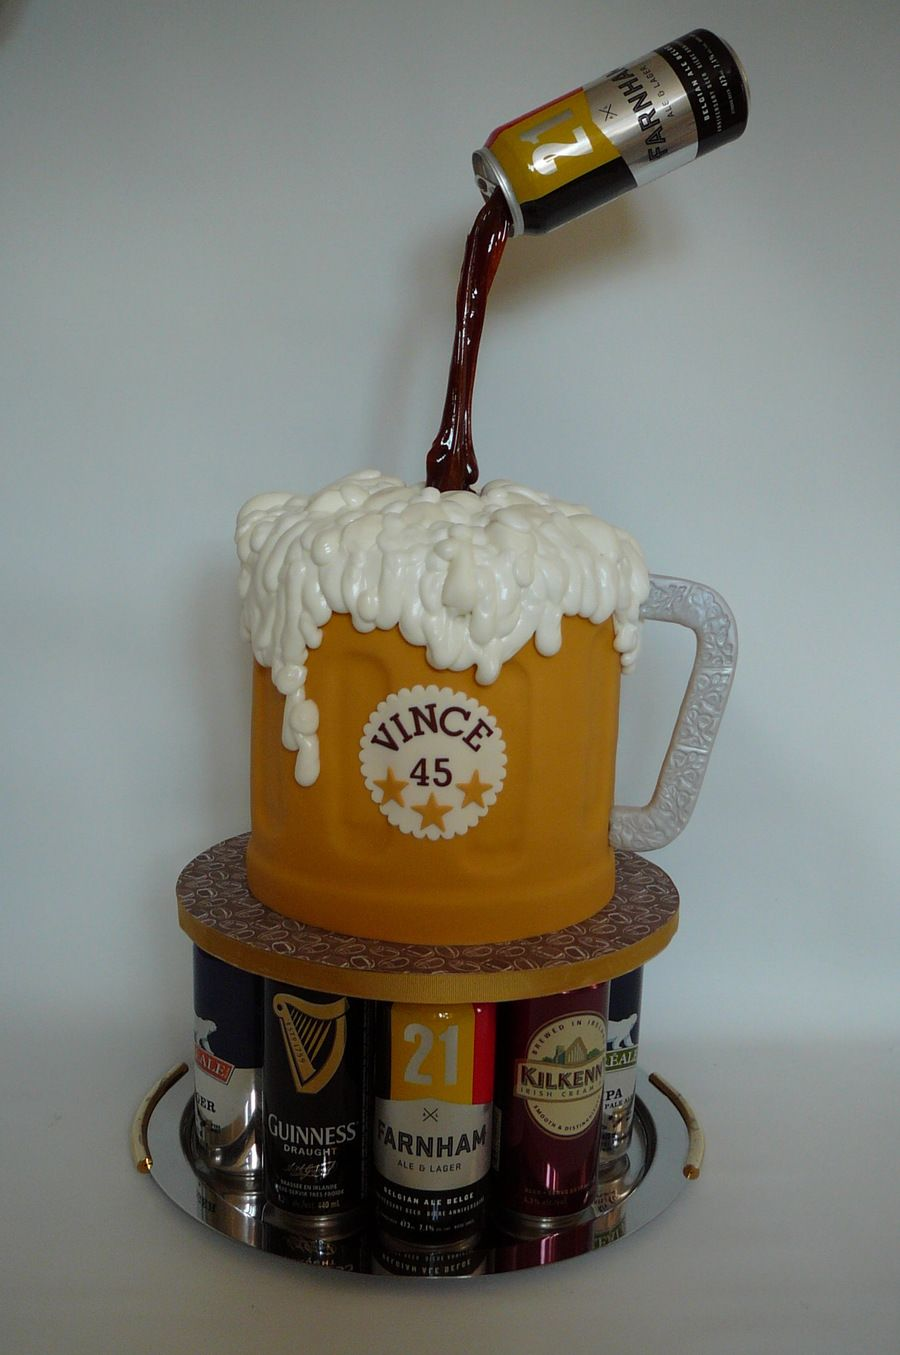 Bock Biere Bock Bière Food Idea Cake Cakes For Men Beer